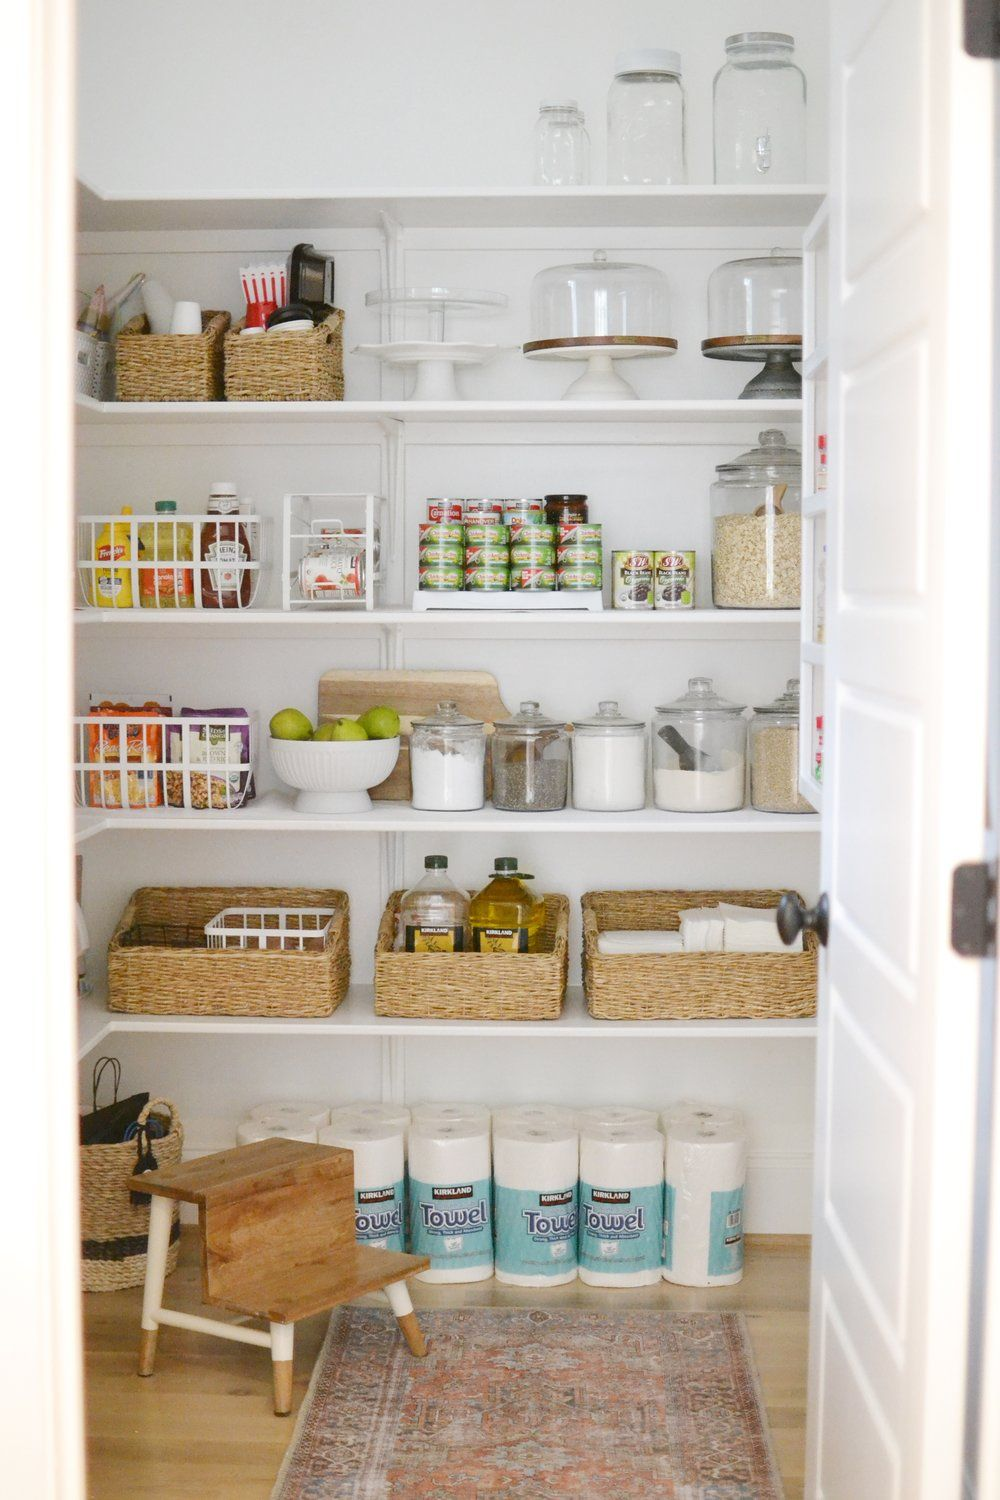 Our Walk In Pantry Organization Kitchen Drawers Pantry Shelving Walk In Pantry Canned Good Storage